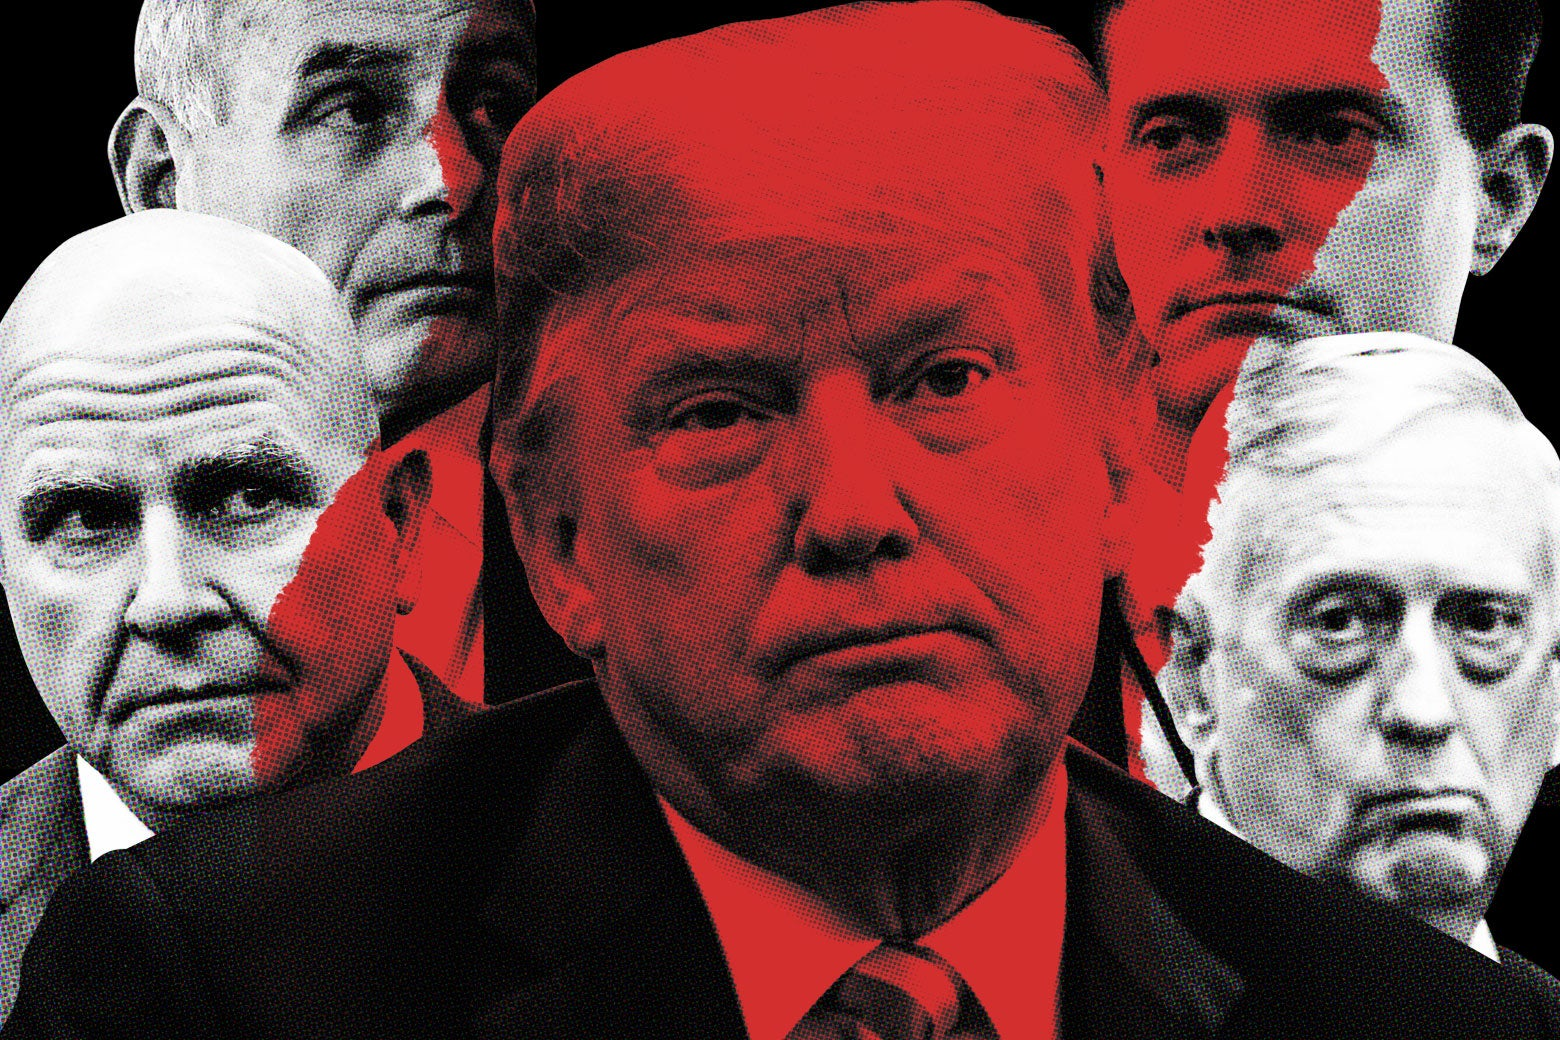 Photo illustration of Donald Trump, James Mattis, John Kelly and other officials.